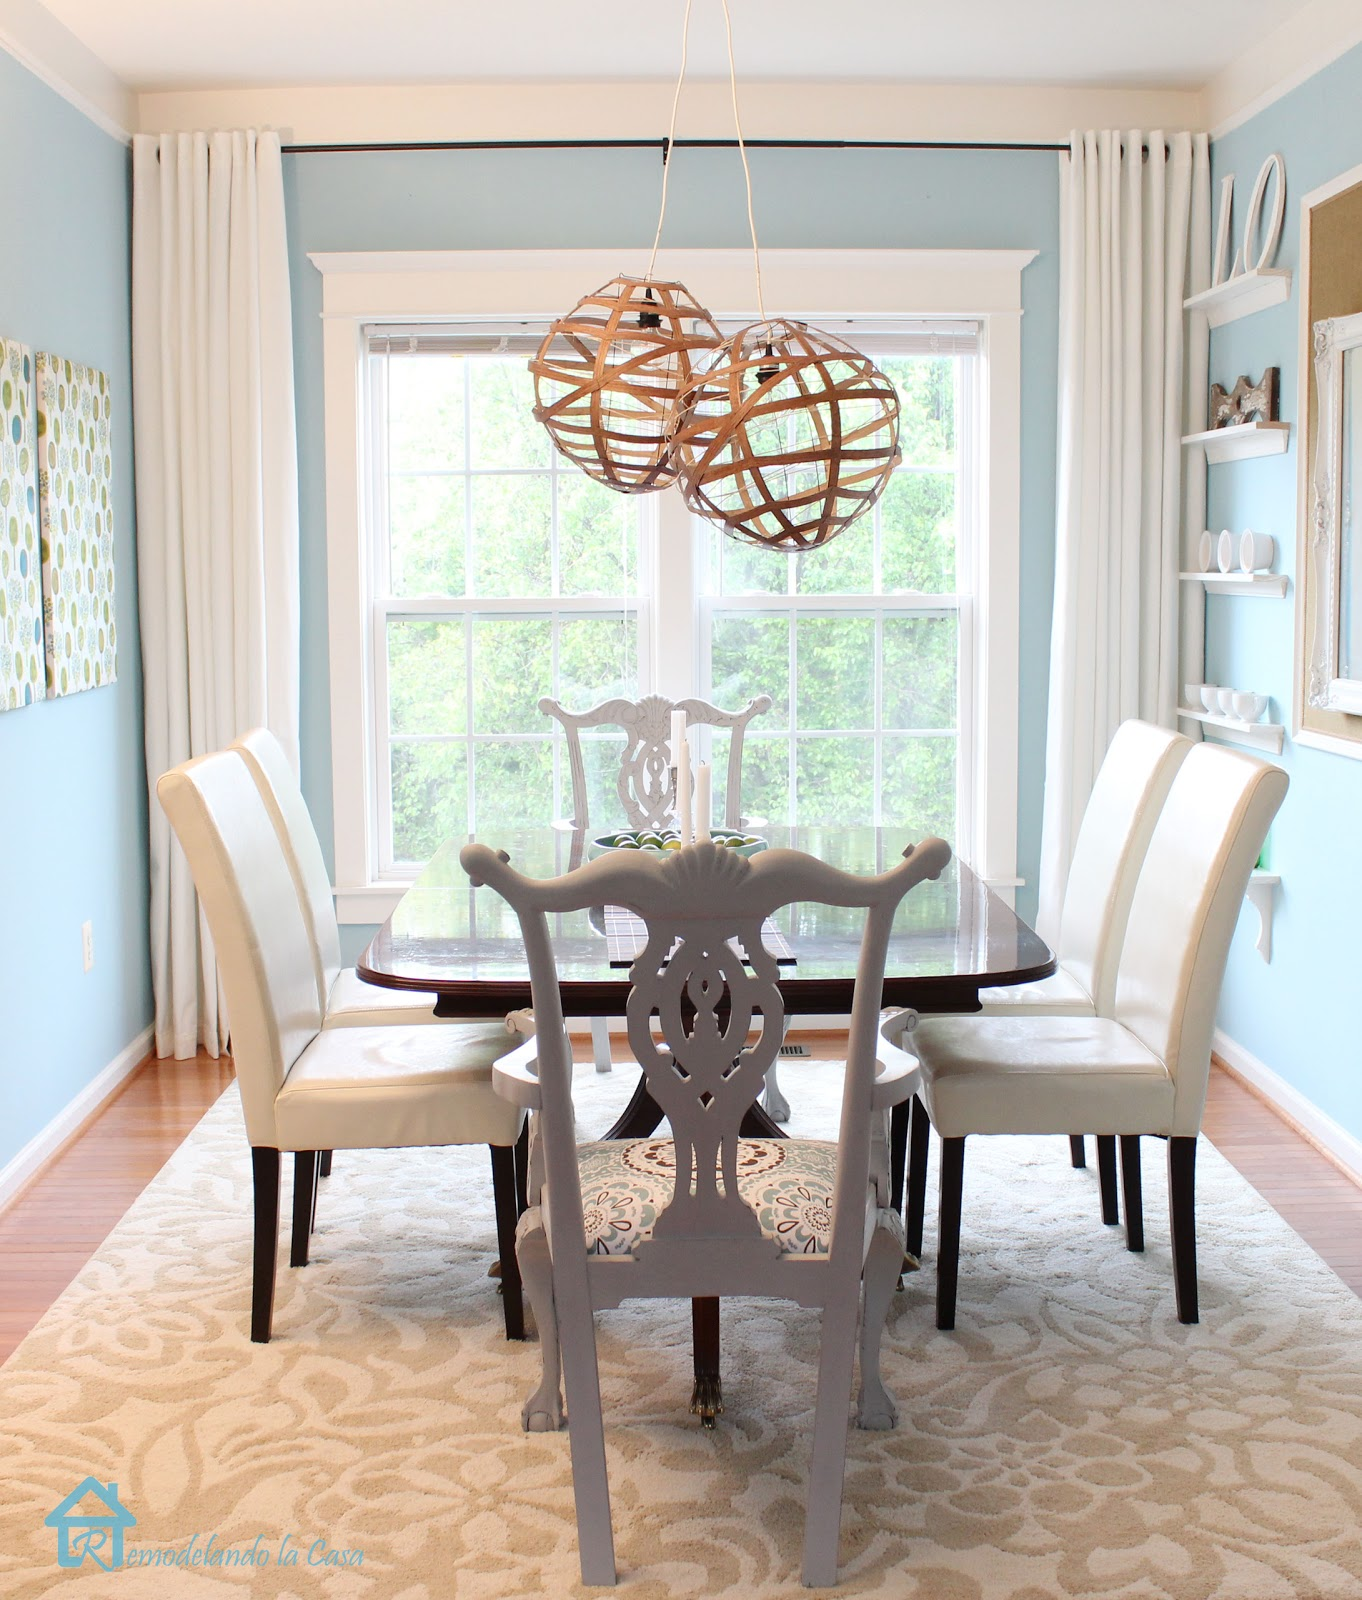 Dining Room Windows: How To Install Trim On A Double Window